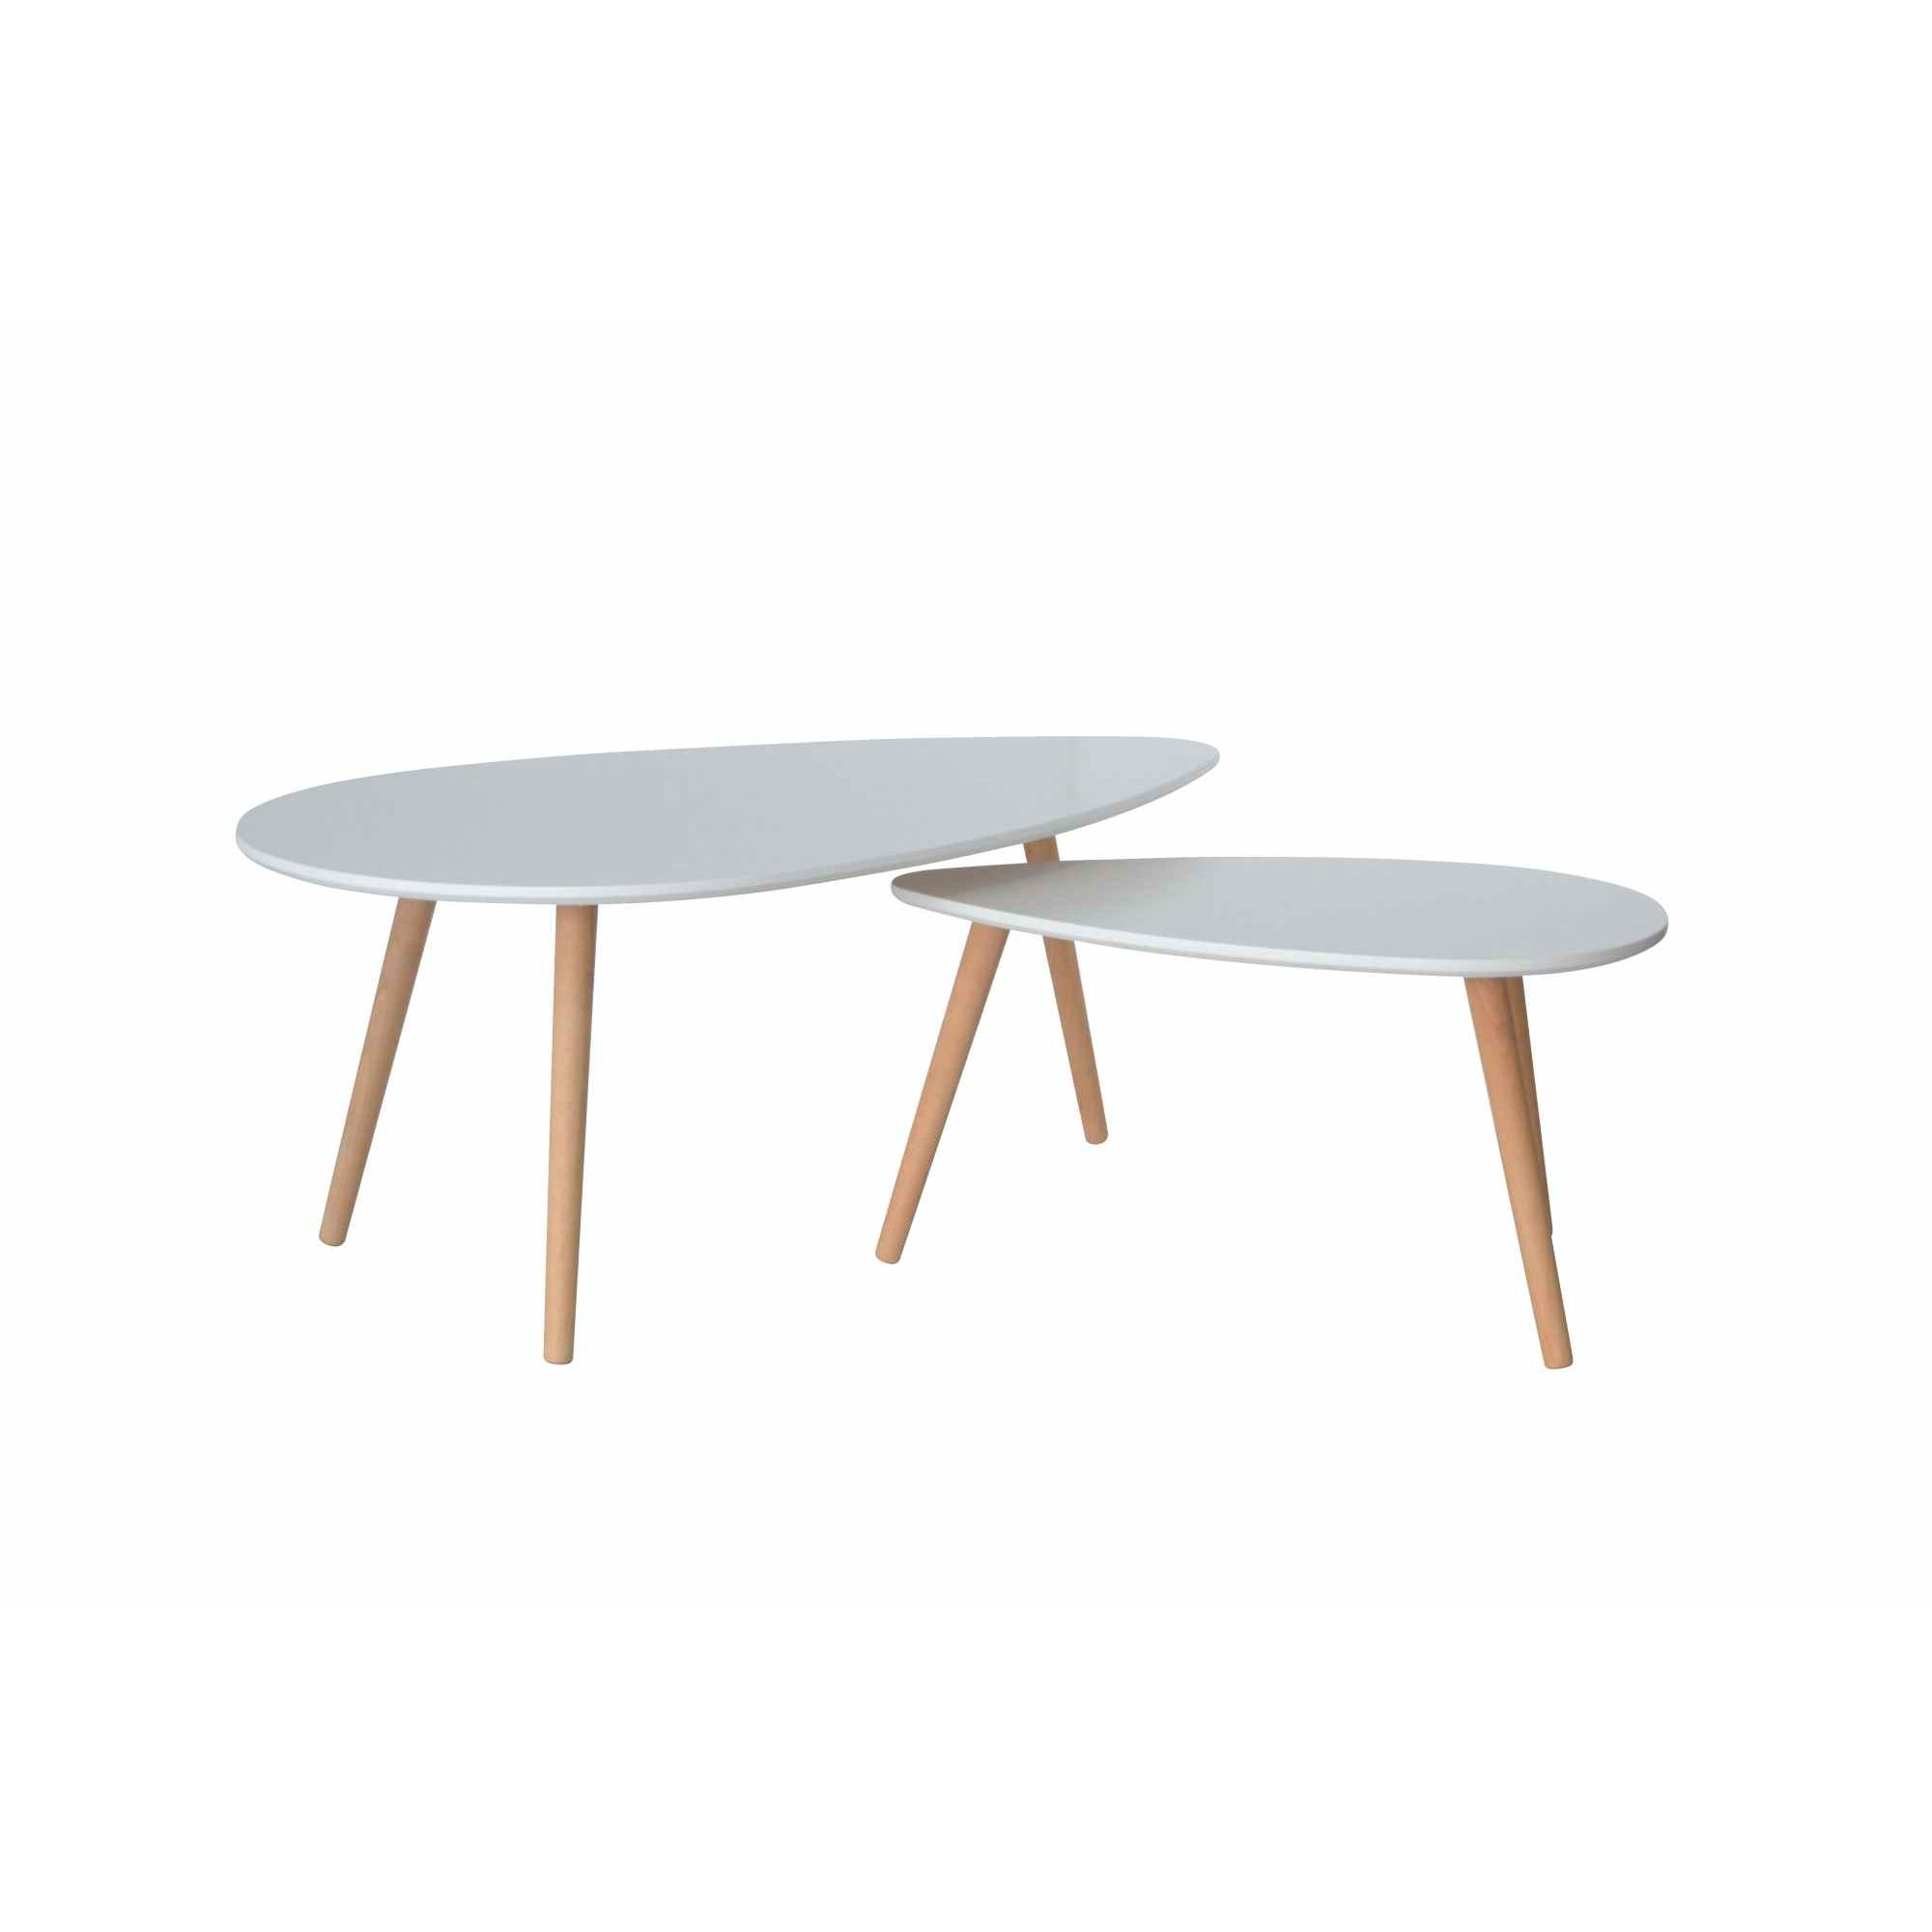 Table Basse Blanche Scandinave Deco In Paris Table Basse Scandinave Blanc Avesta Avesta